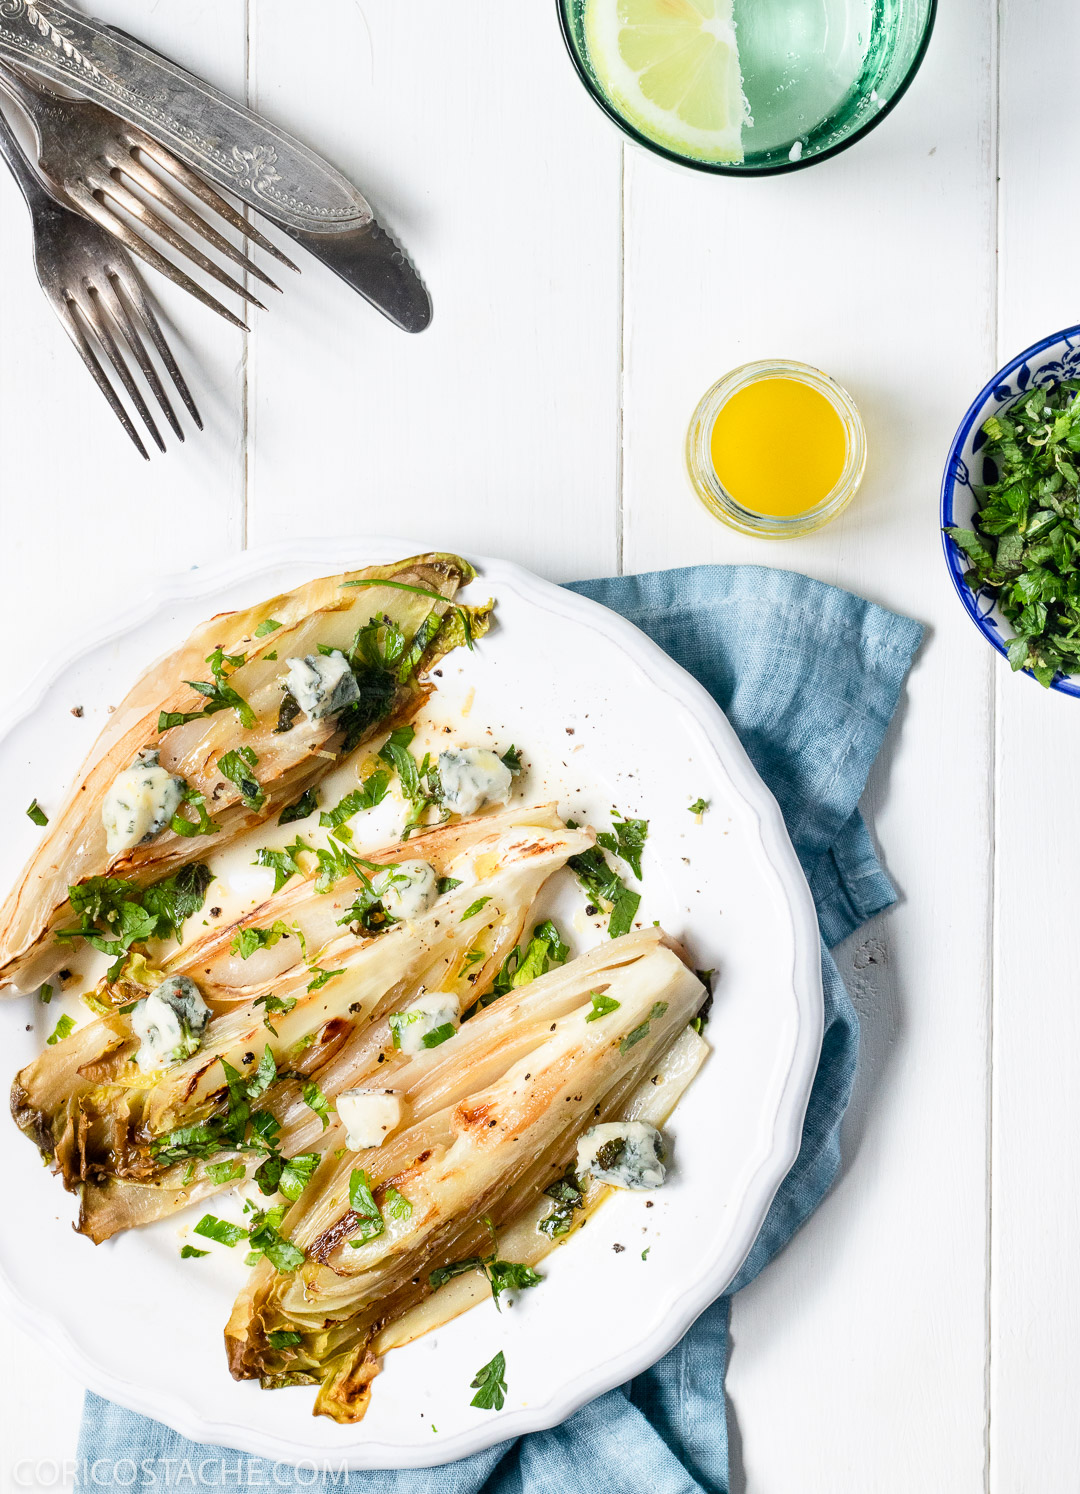 Seared Endives with Gorgonzola & Mint Gremolata